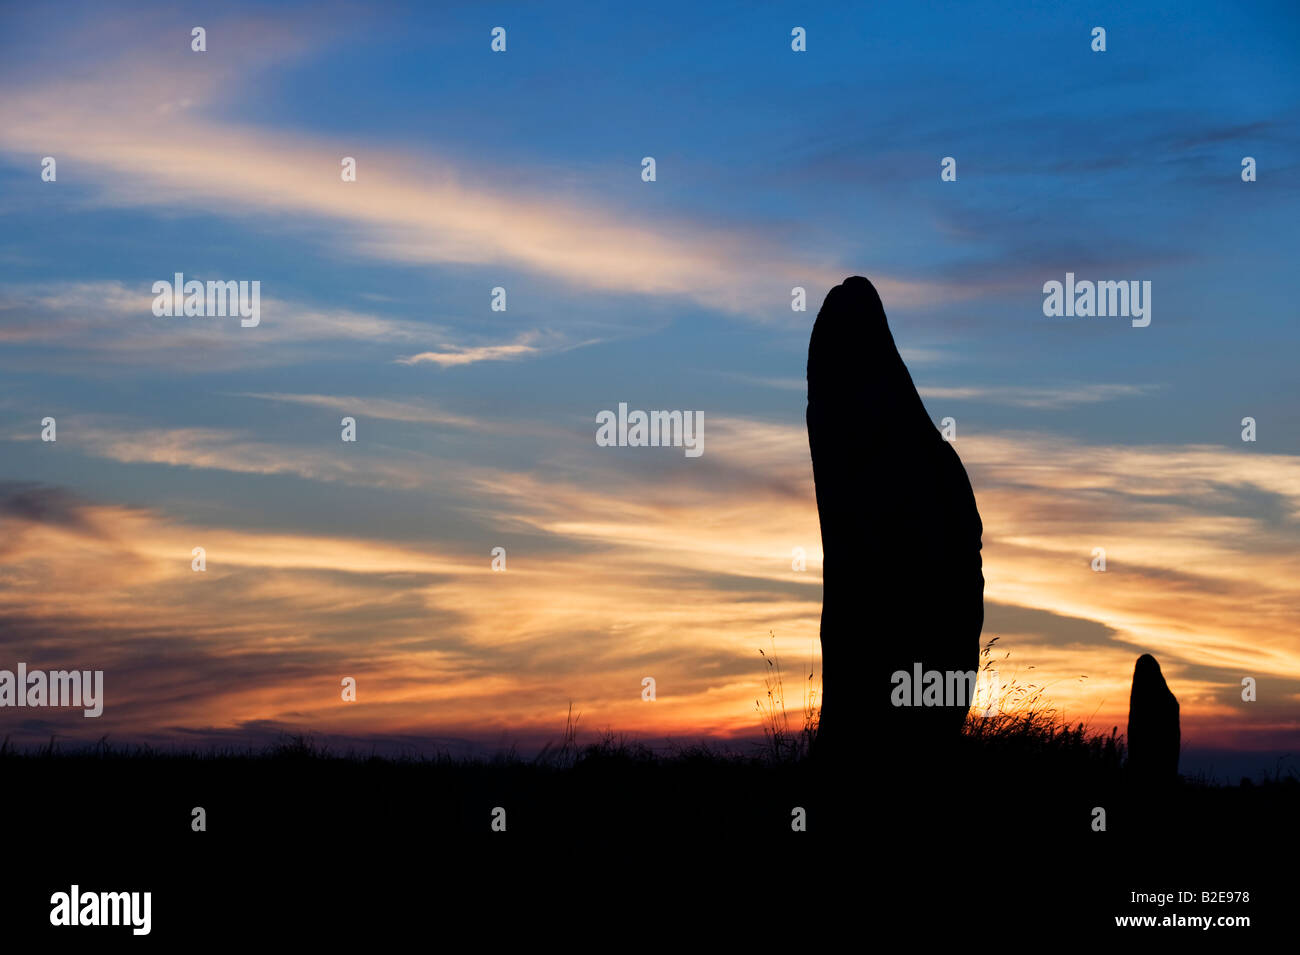 Avebury standing stones against a sunset. Silhouette - Stock Image